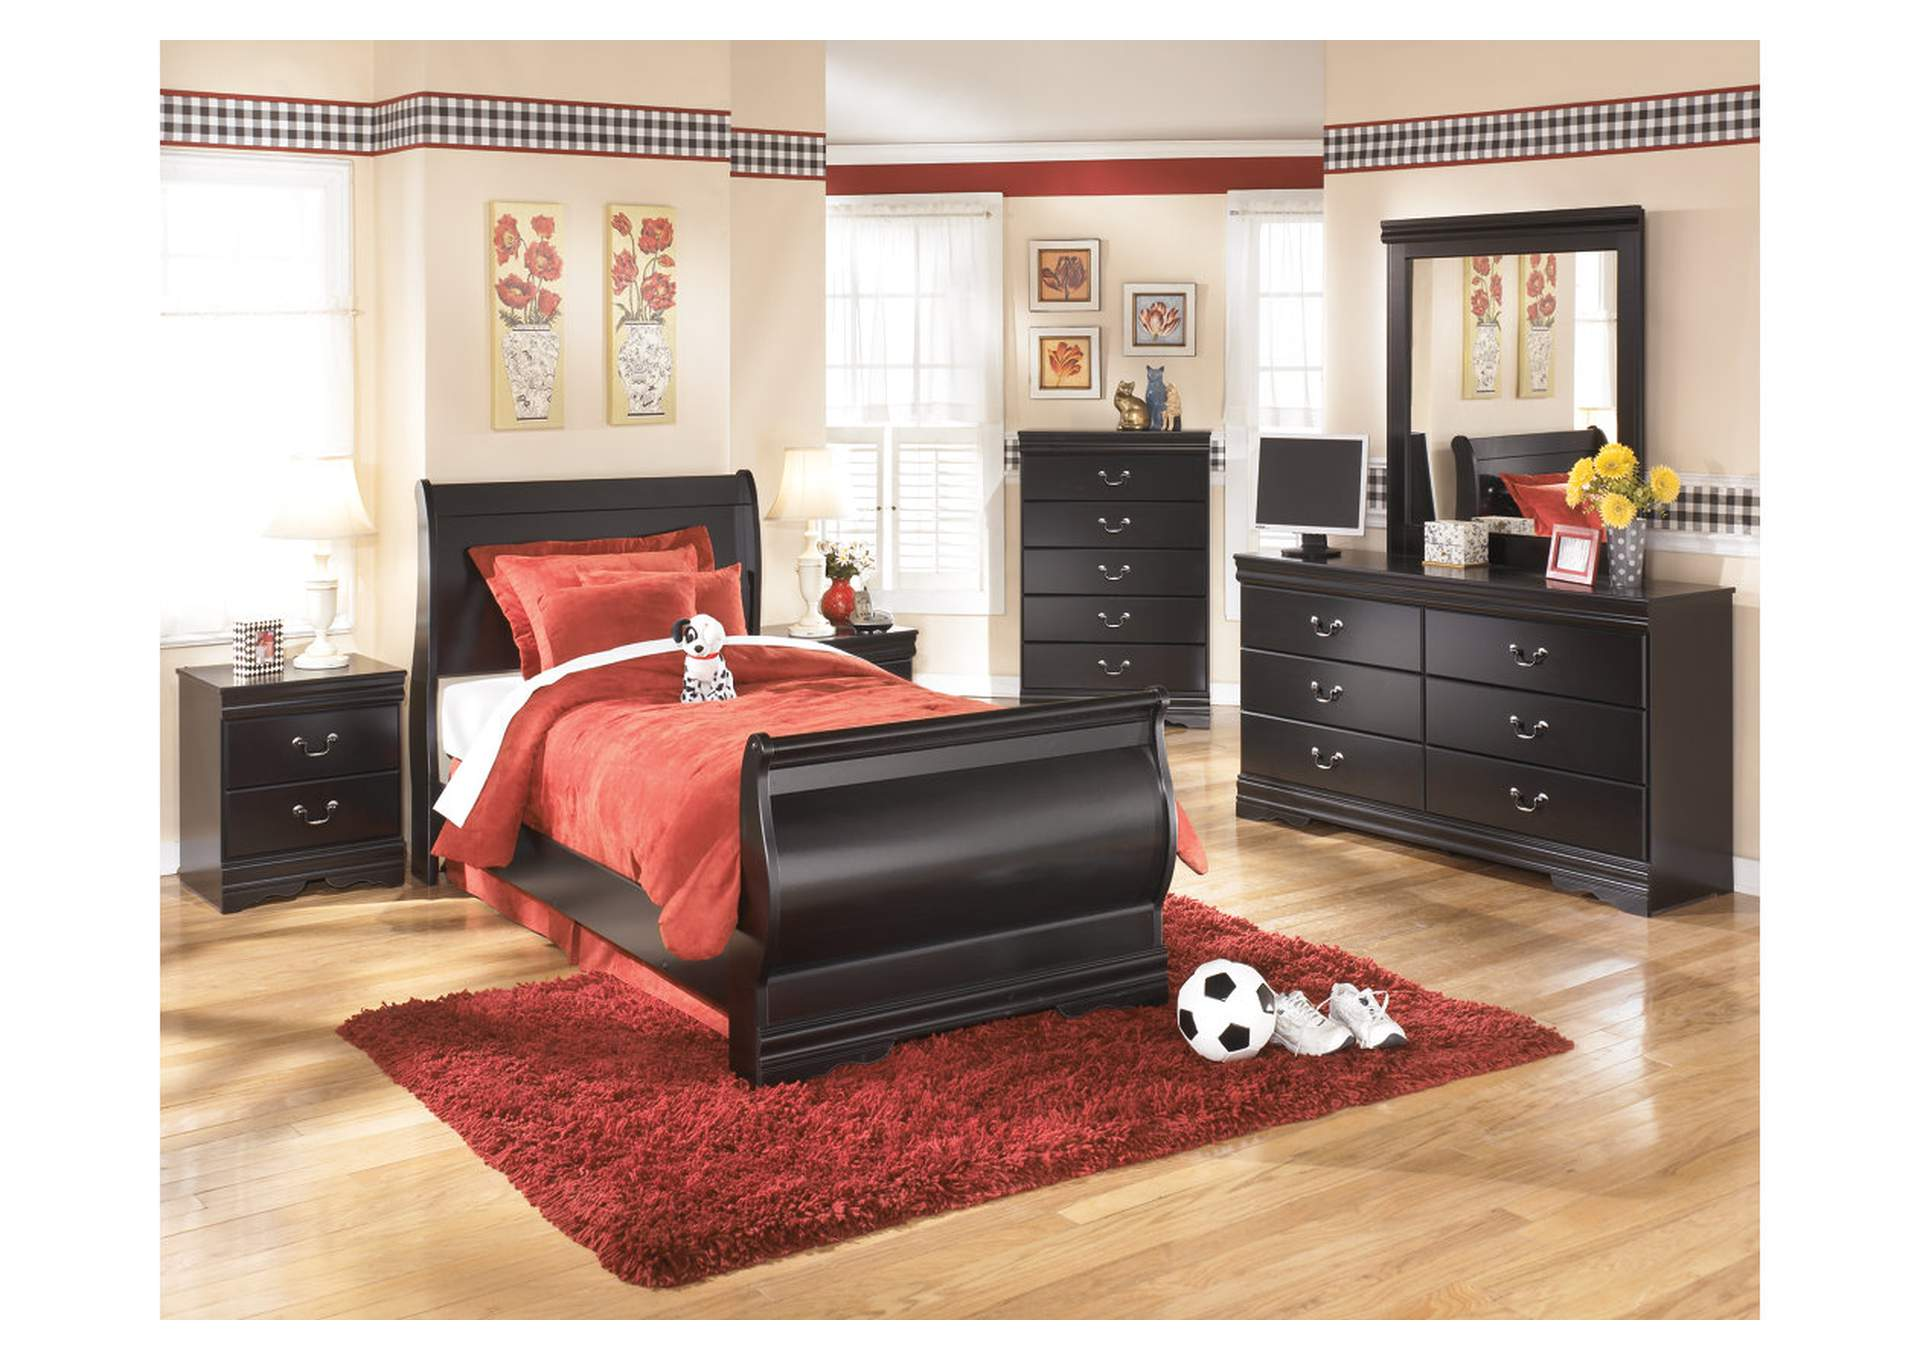 Huey Vineyard Full Sleigh Bed w/Dresser, Mirror & Drawer Chest,Signature Design By Ashley